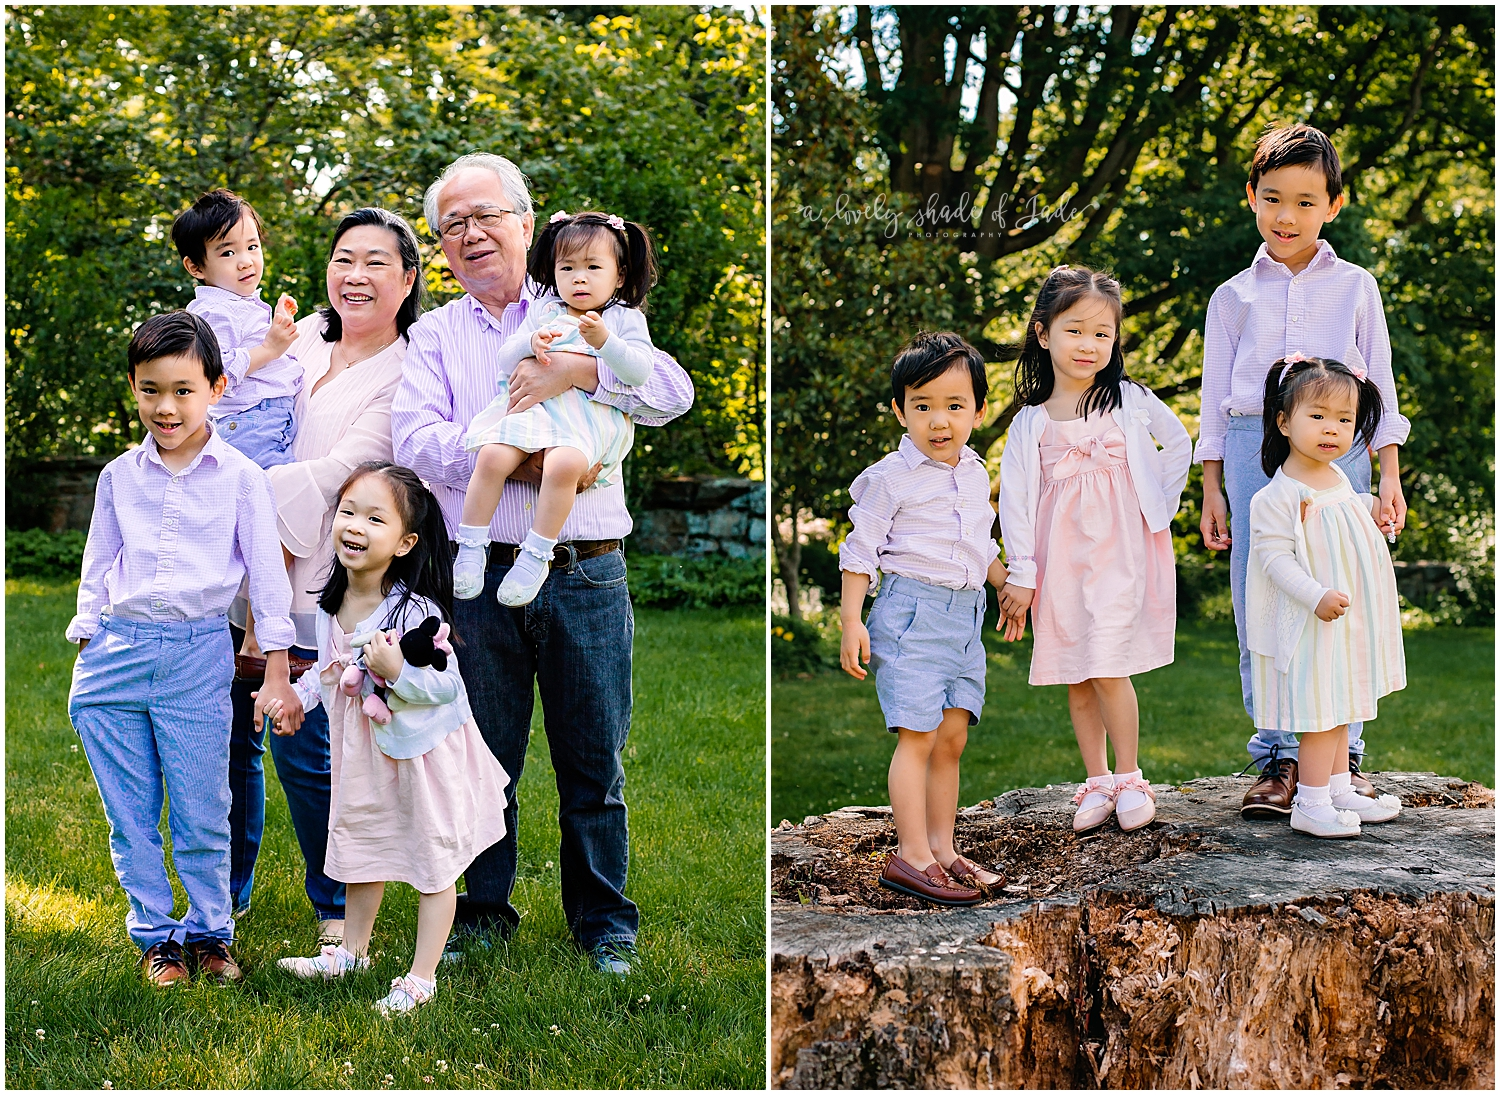 Fun_Extended_Family_Session_Morristown_NJ_Photography_0012.jpg